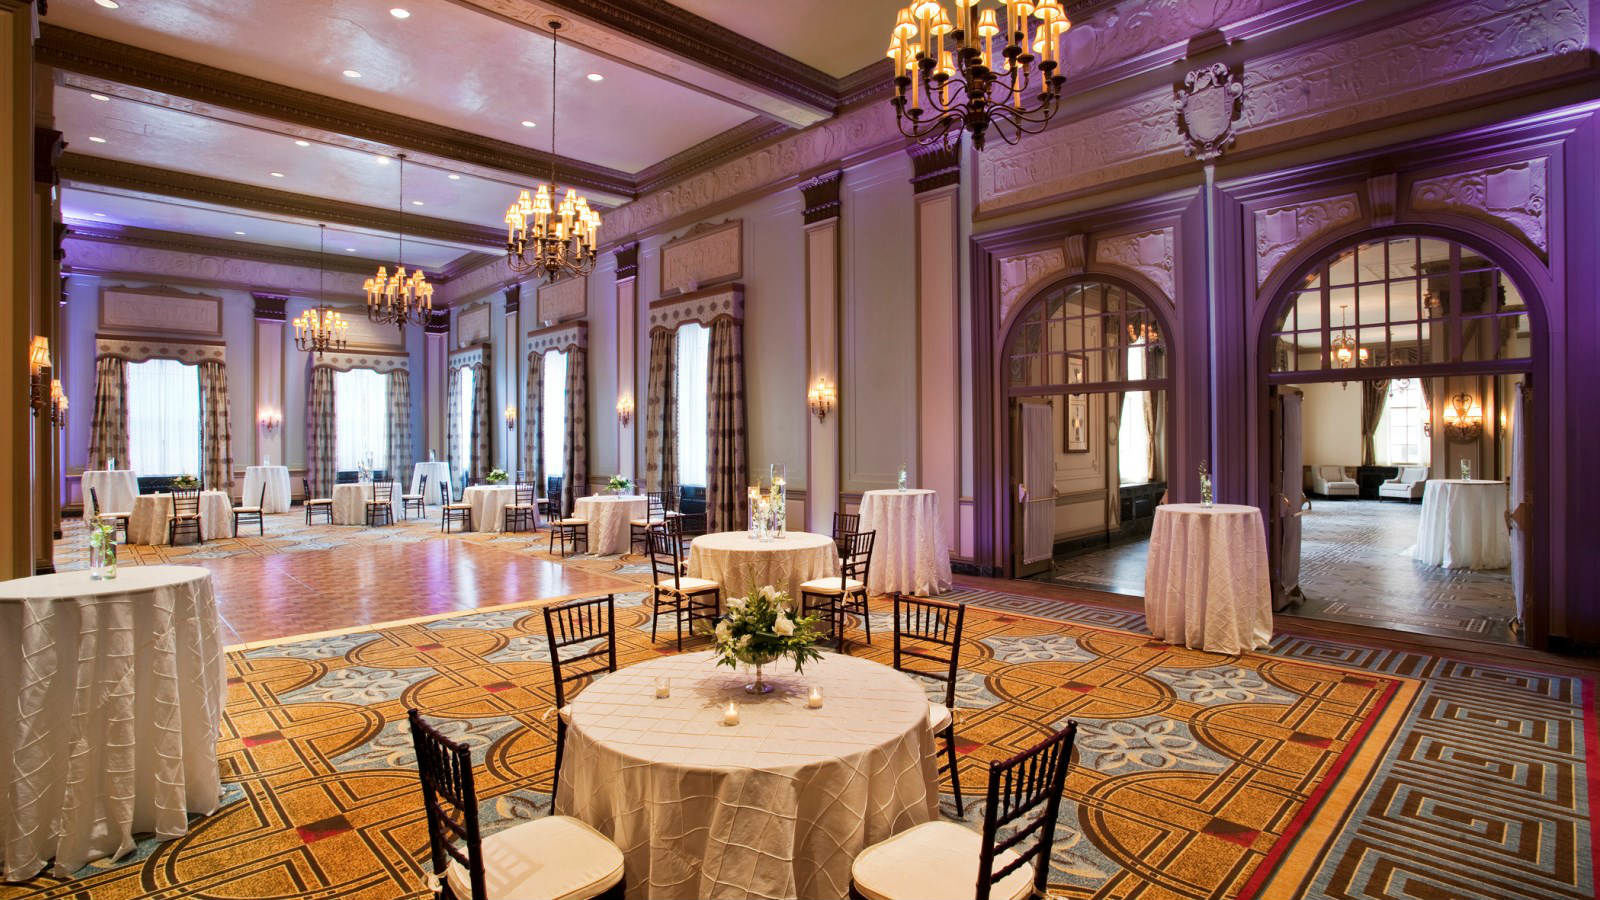 The Westin Poinsett, Greenville - Poinsett Ballroom